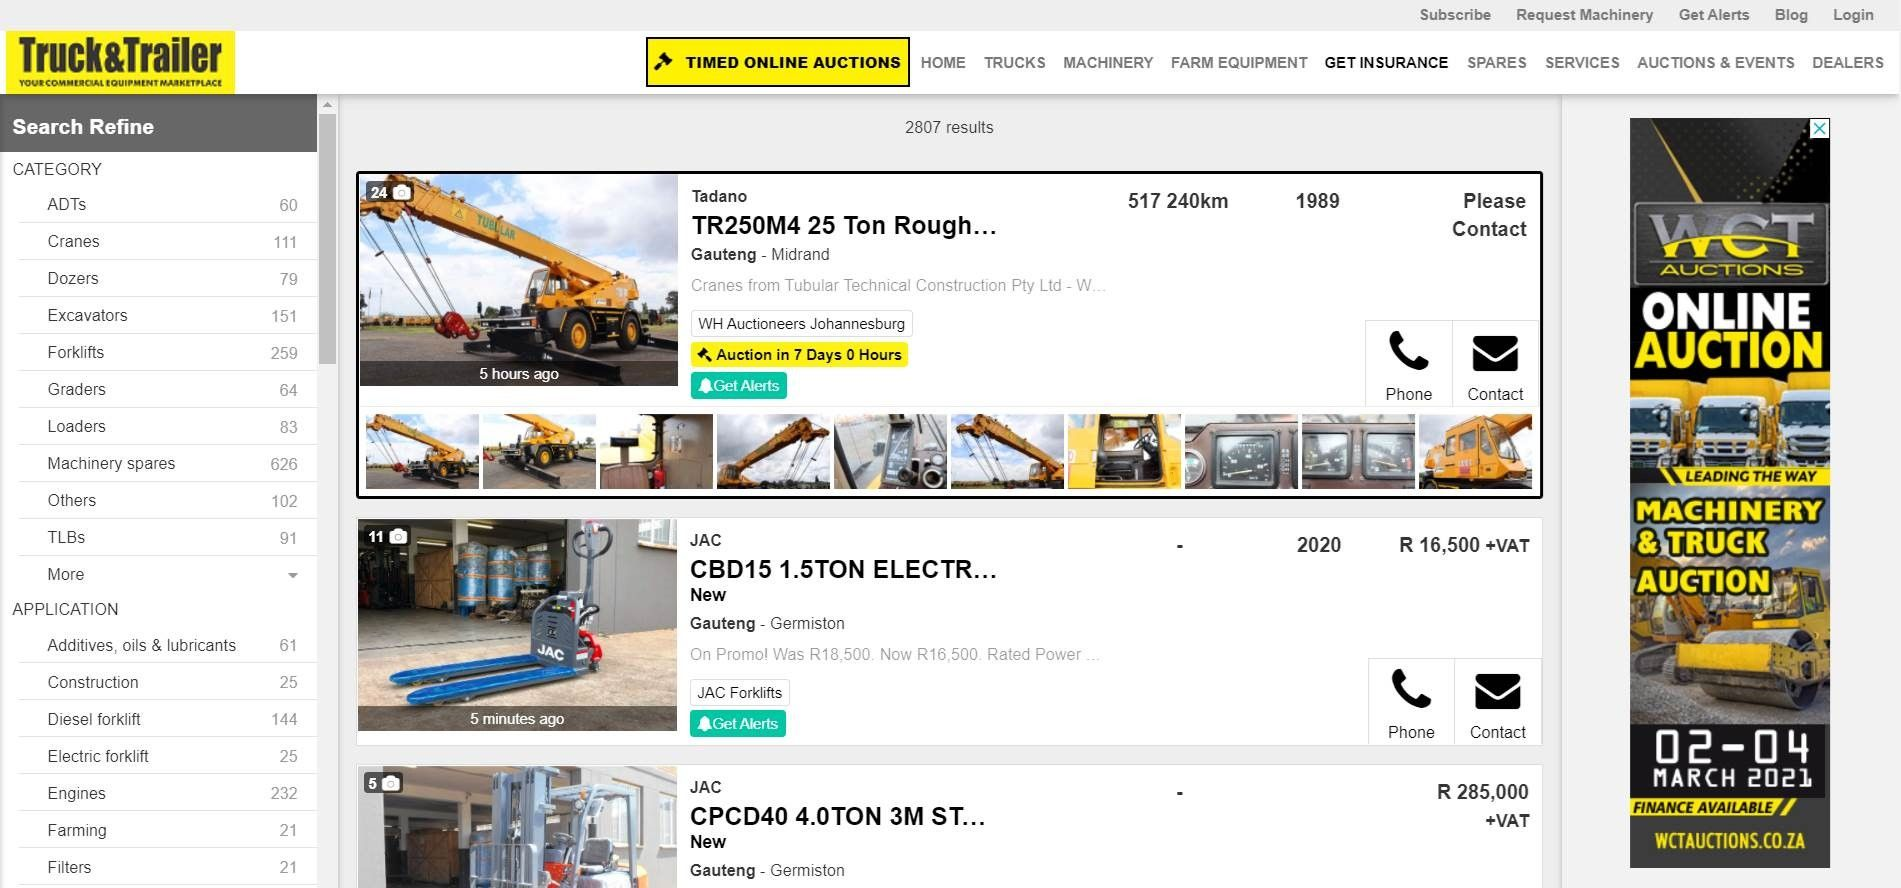 Search Results Page Banner | Truck & Trailer